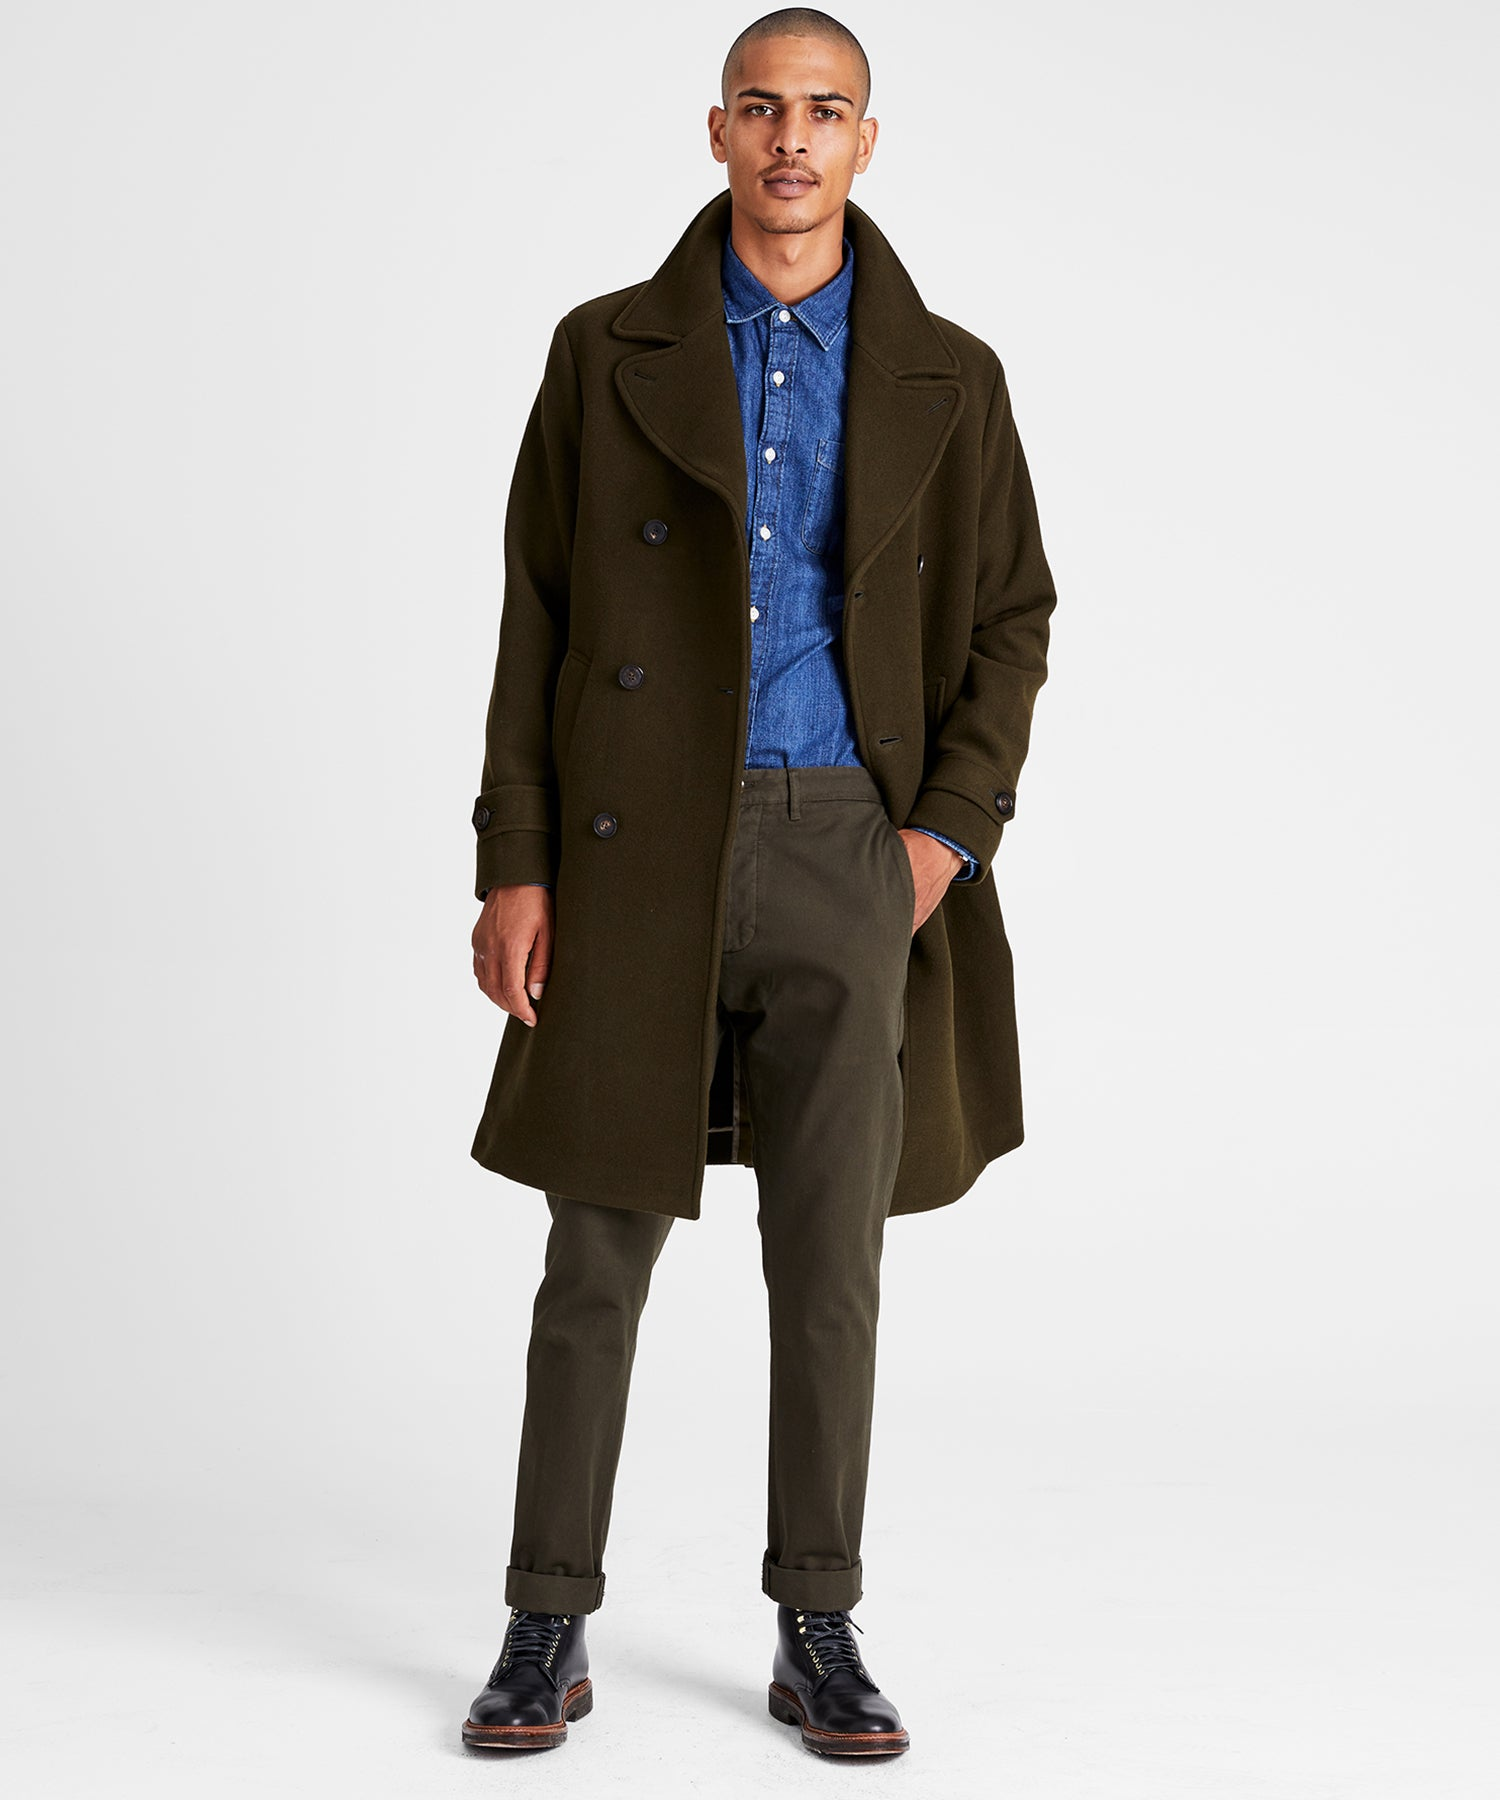 Italian Wool Double Breasted Officer Topcoat in Olive